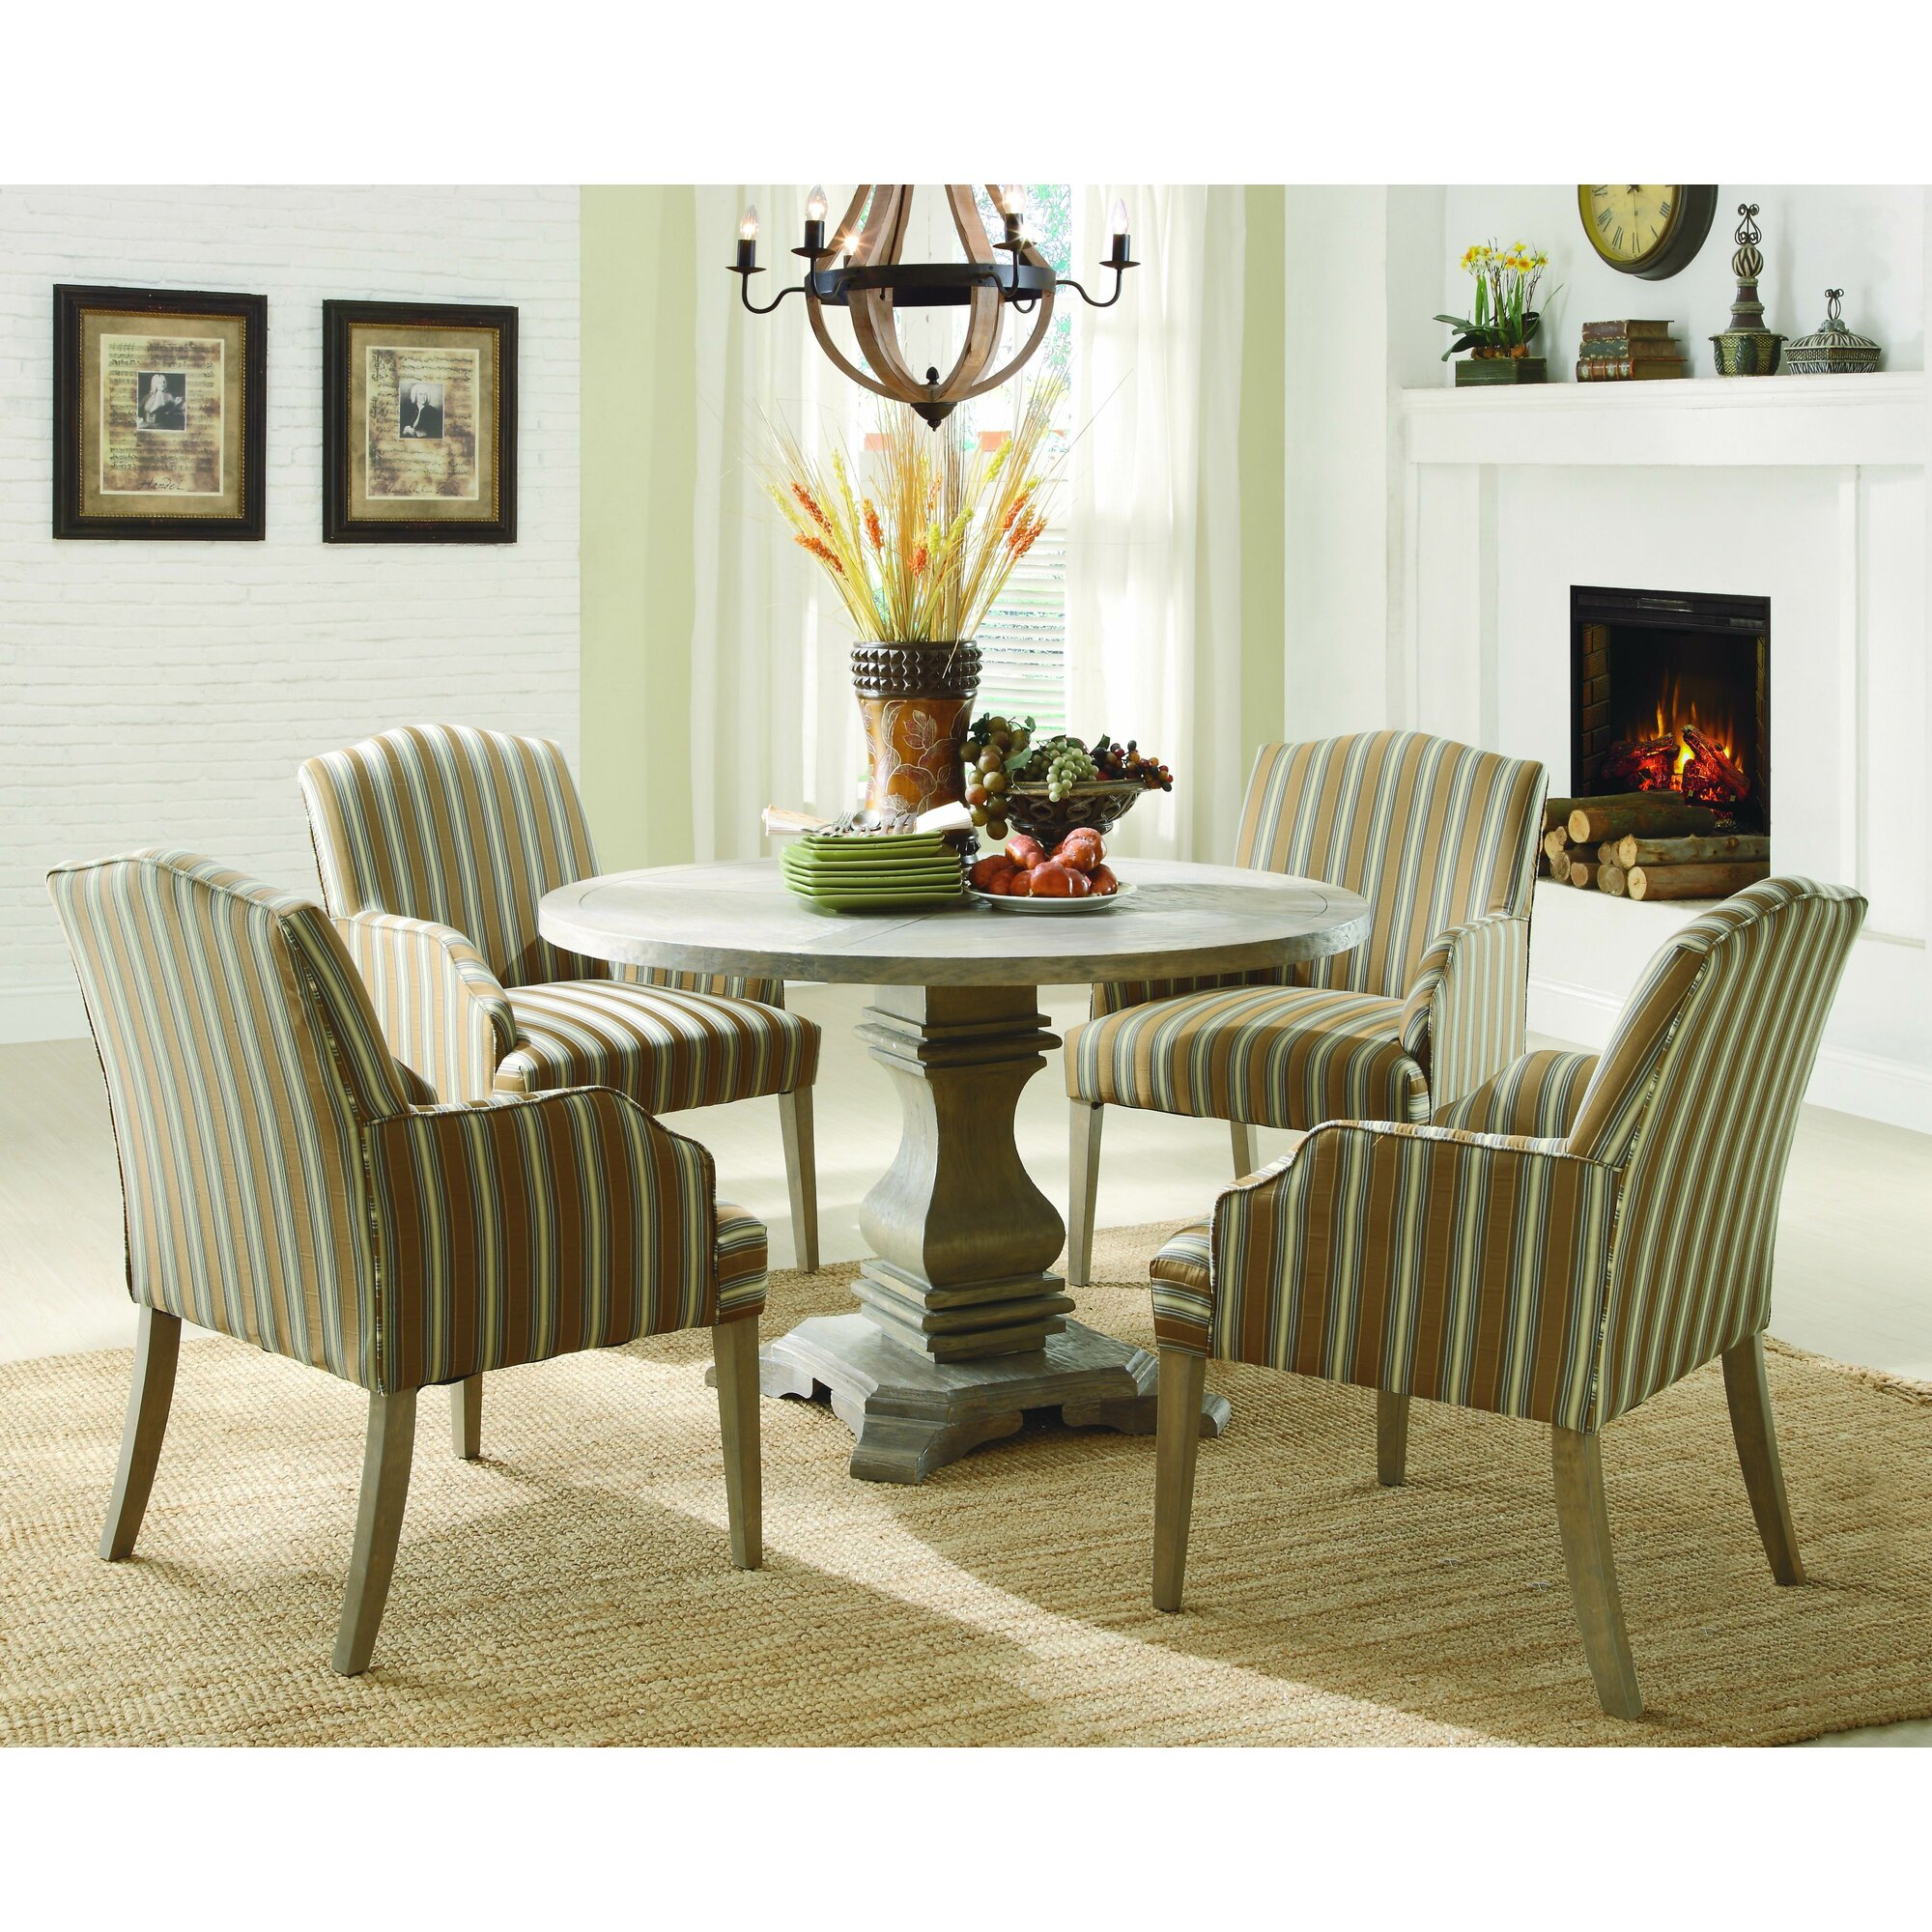 homelegance euro casual dining table reviews. Black Bedroom Furniture Sets. Home Design Ideas